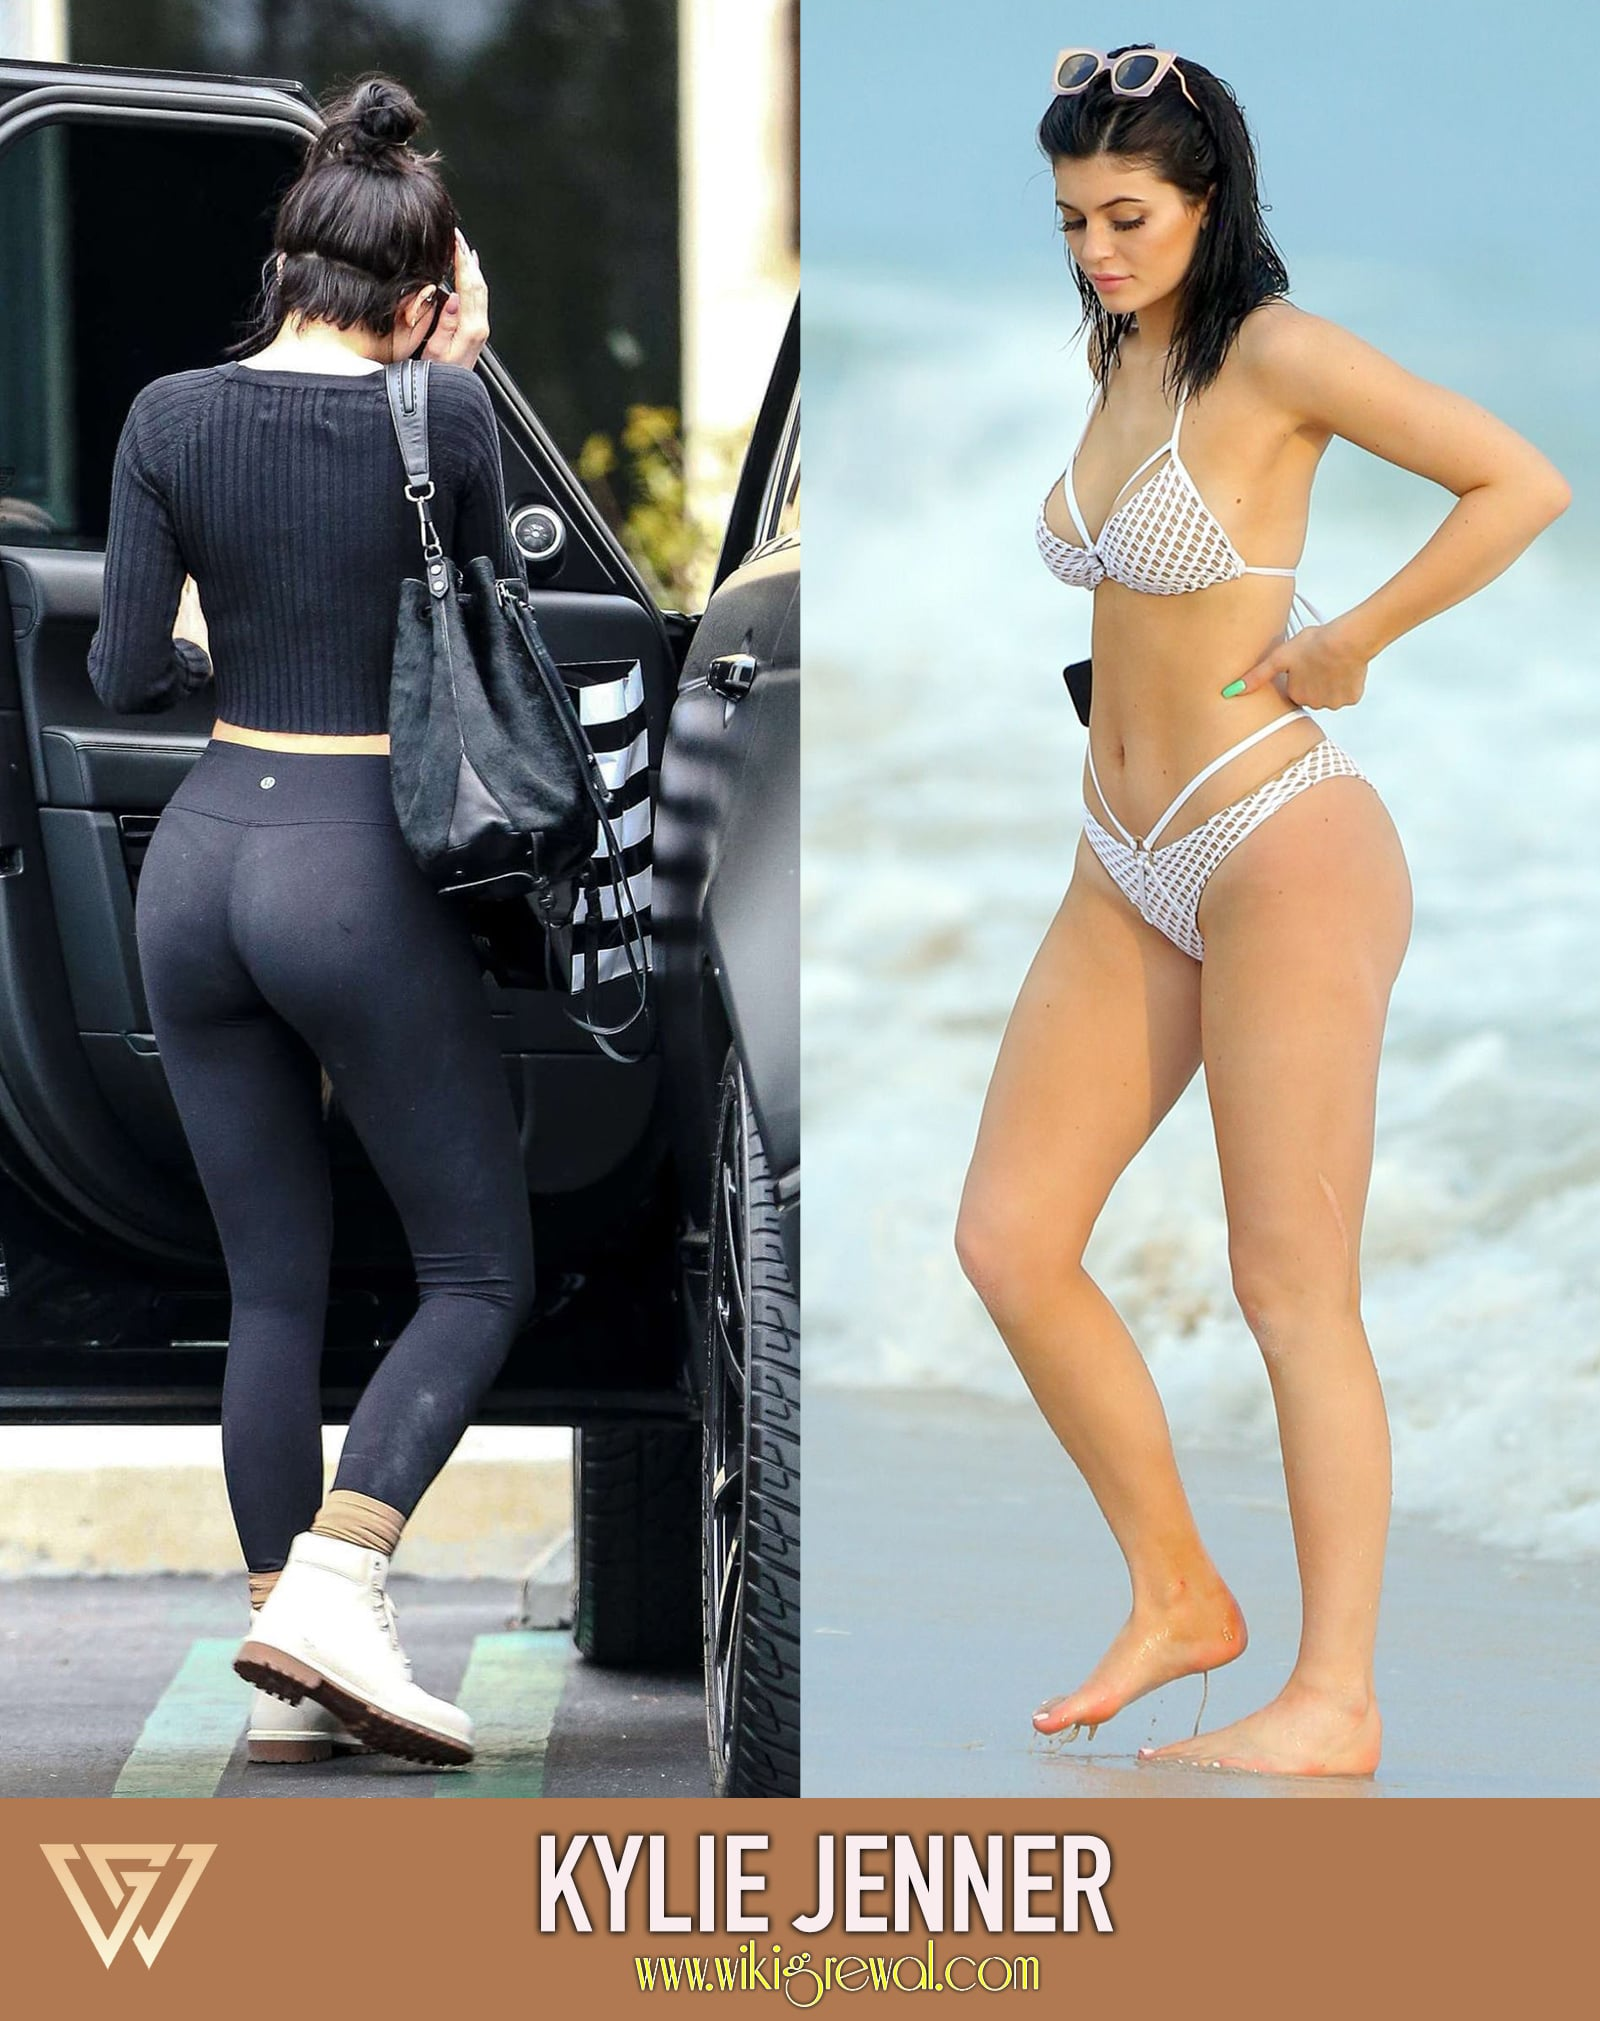 Kylie Jenners booty implants in yoga pants   HOT Girls In